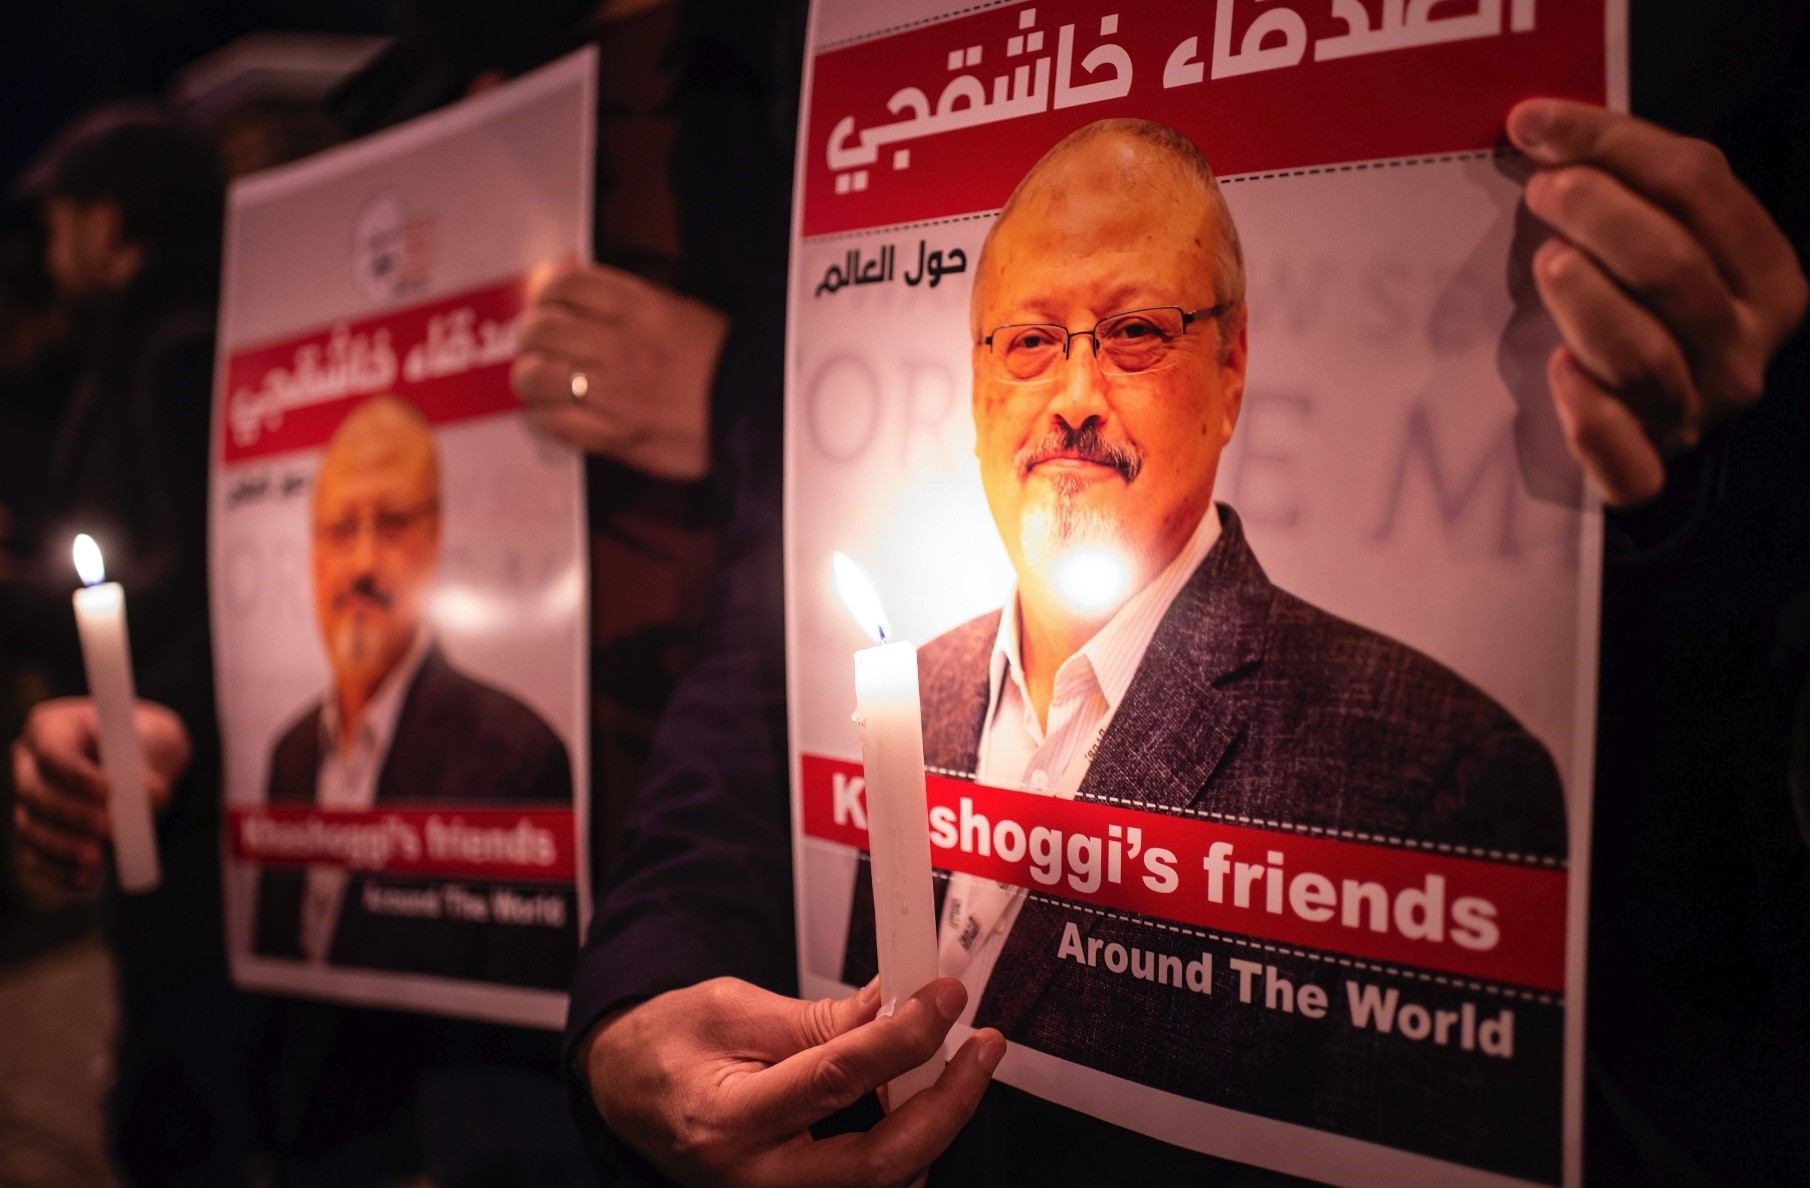 People hold posters at murdered Saudi journalist Jamal Khashoggi and light candles during a gathering outside the Saudi Arabia Consulate in Istanbul, Oct. 25, 2018.